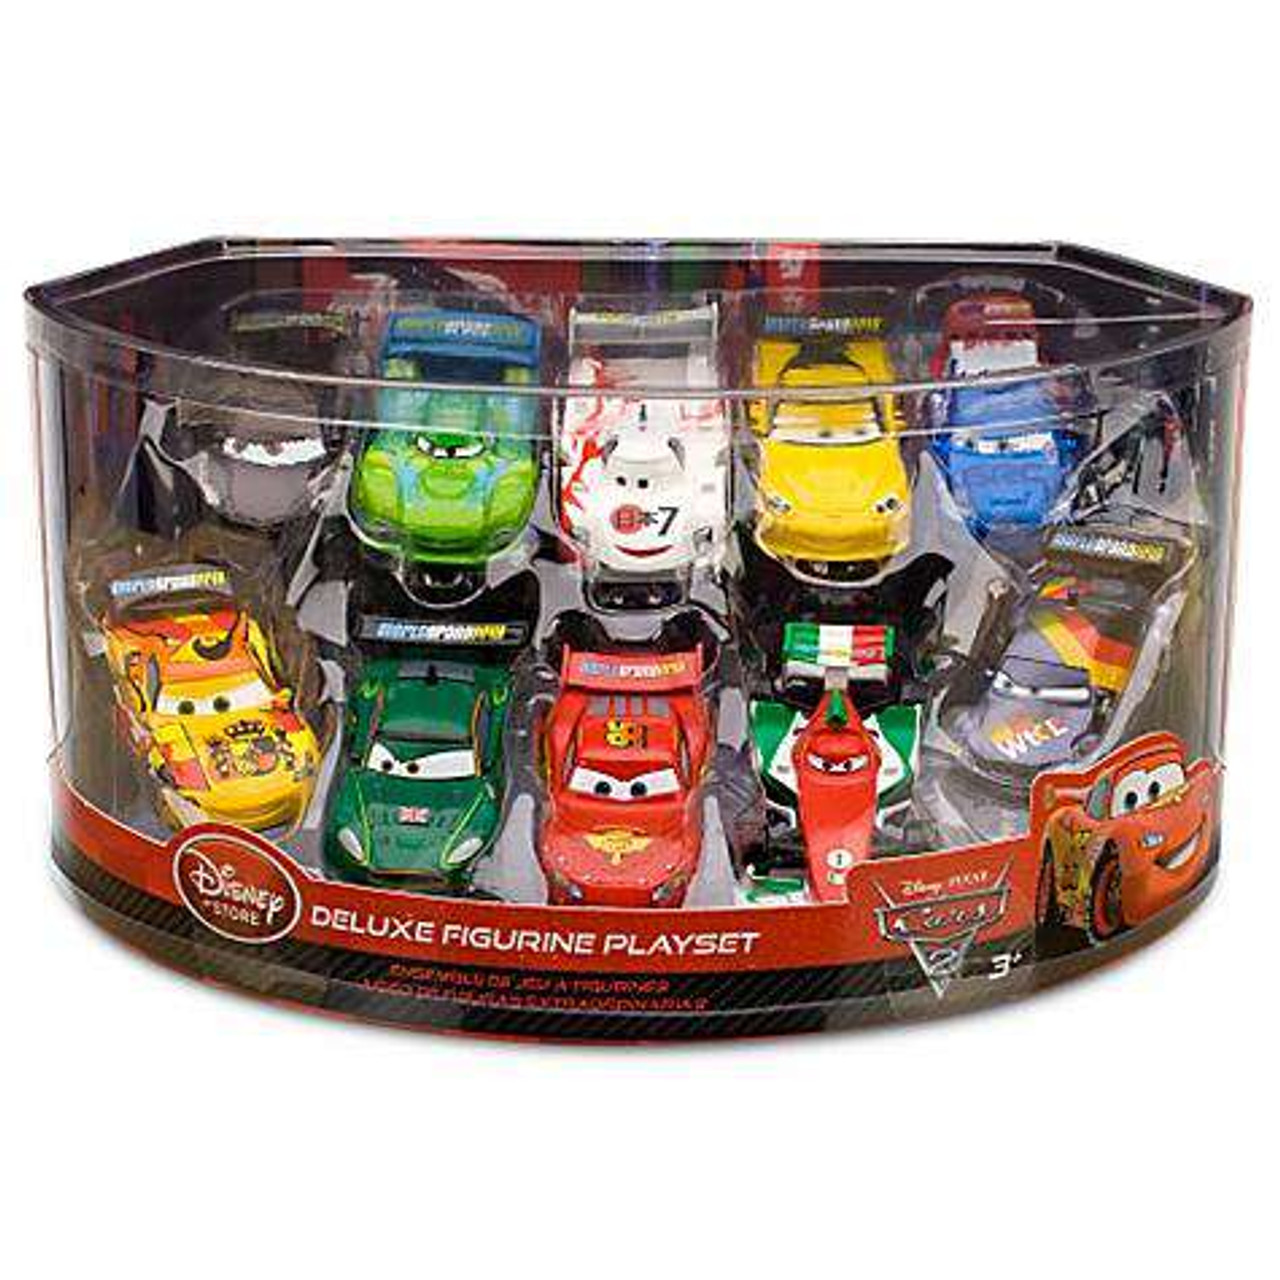 Cars Cars 2 Playsets Lightning McQueen Pit Crew Exclusive PVC Figurine Set